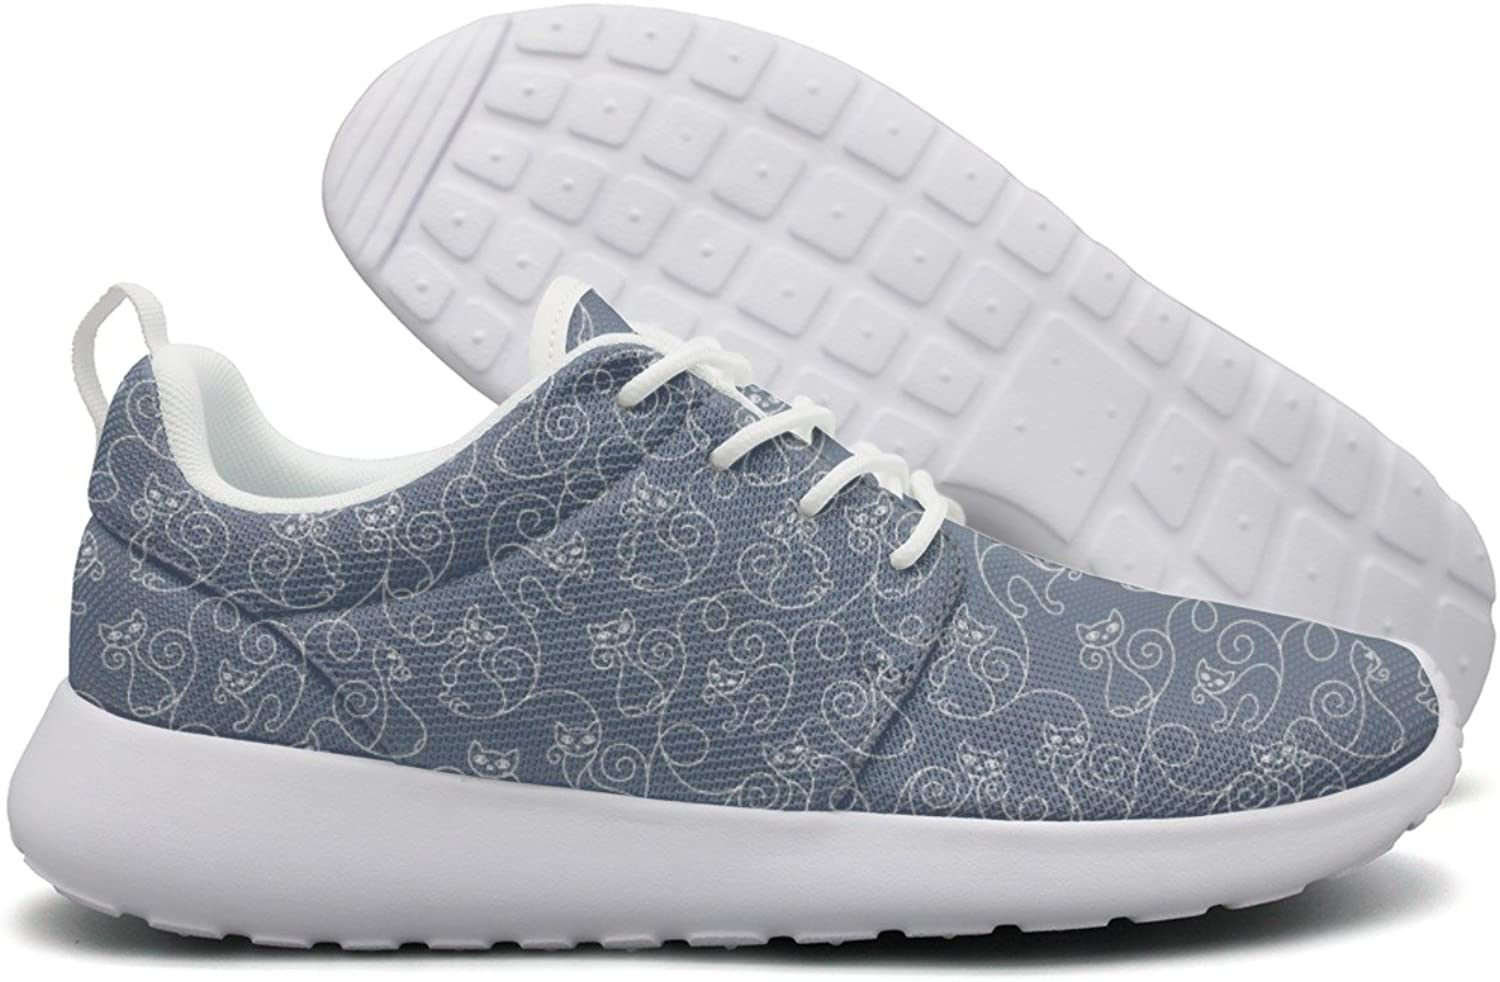 Hoohle Sports Cartoon Cats bluee Background Women Roshe One Flex Mesh Casual shoes for Men